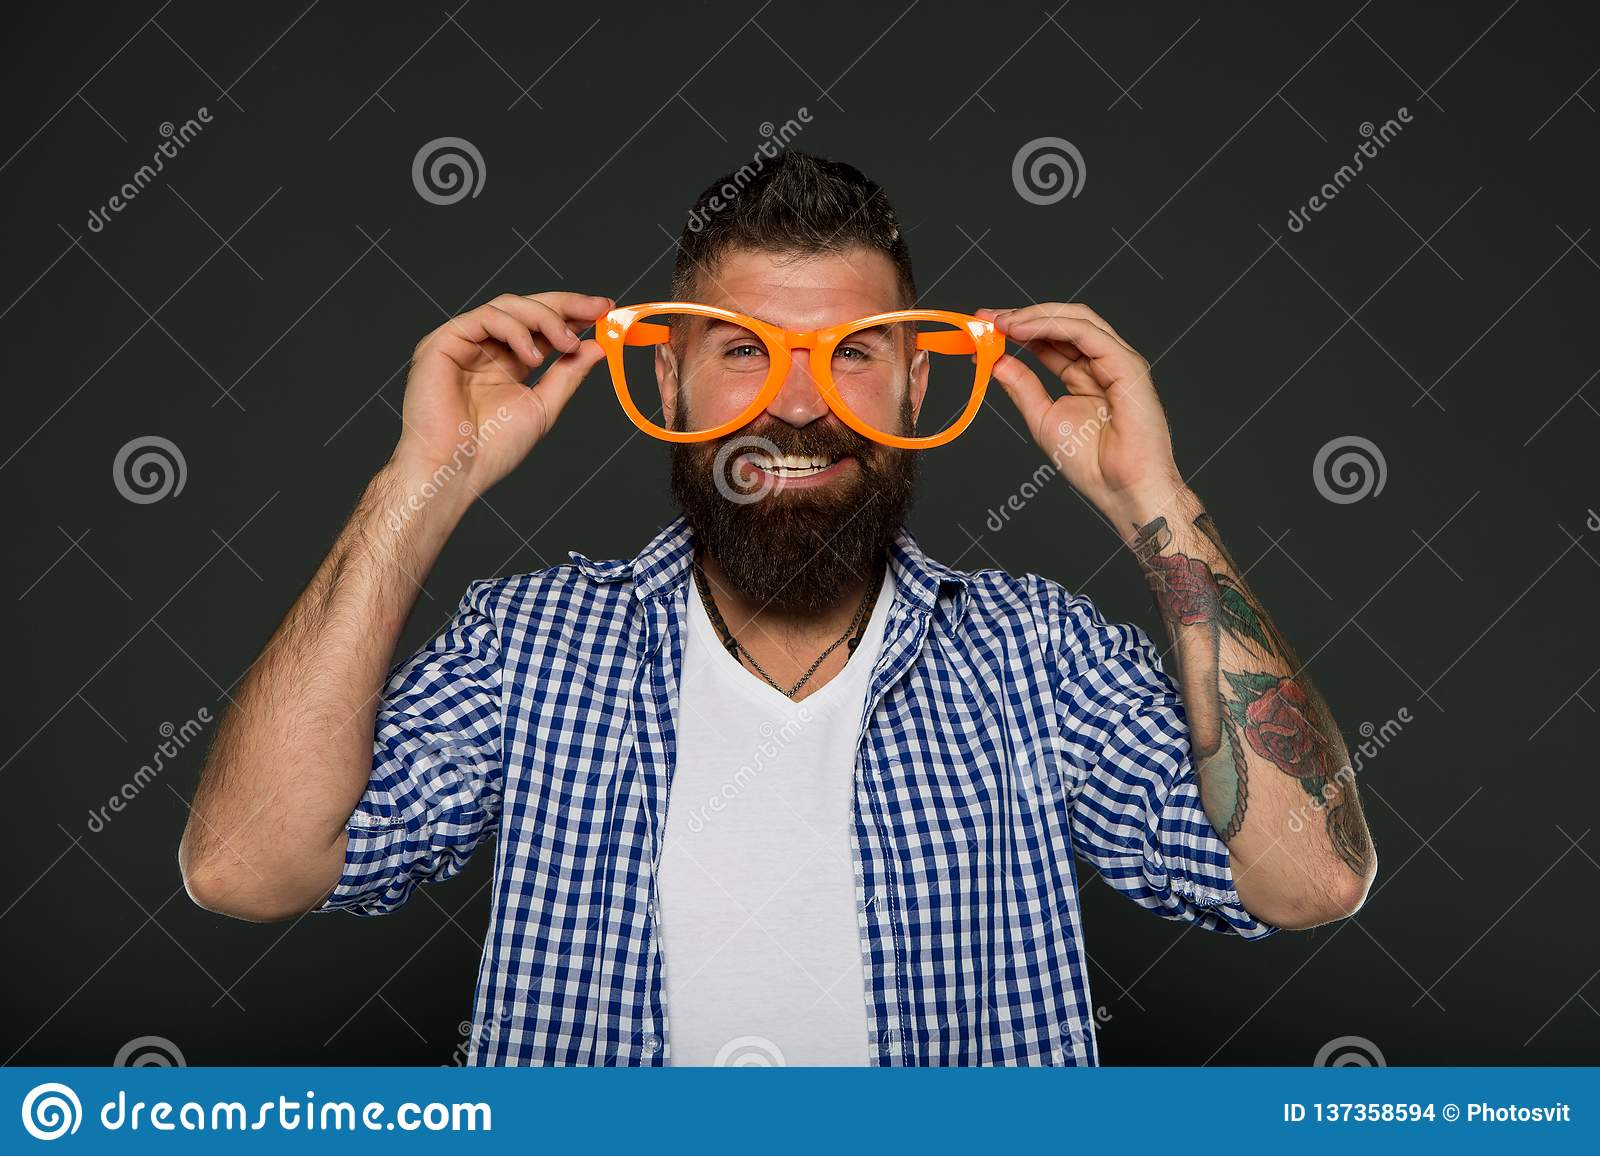 Man brutal bearded hipster wear funny eyeglasses accessory. Human strengths and virtues. Positive mood. Positive